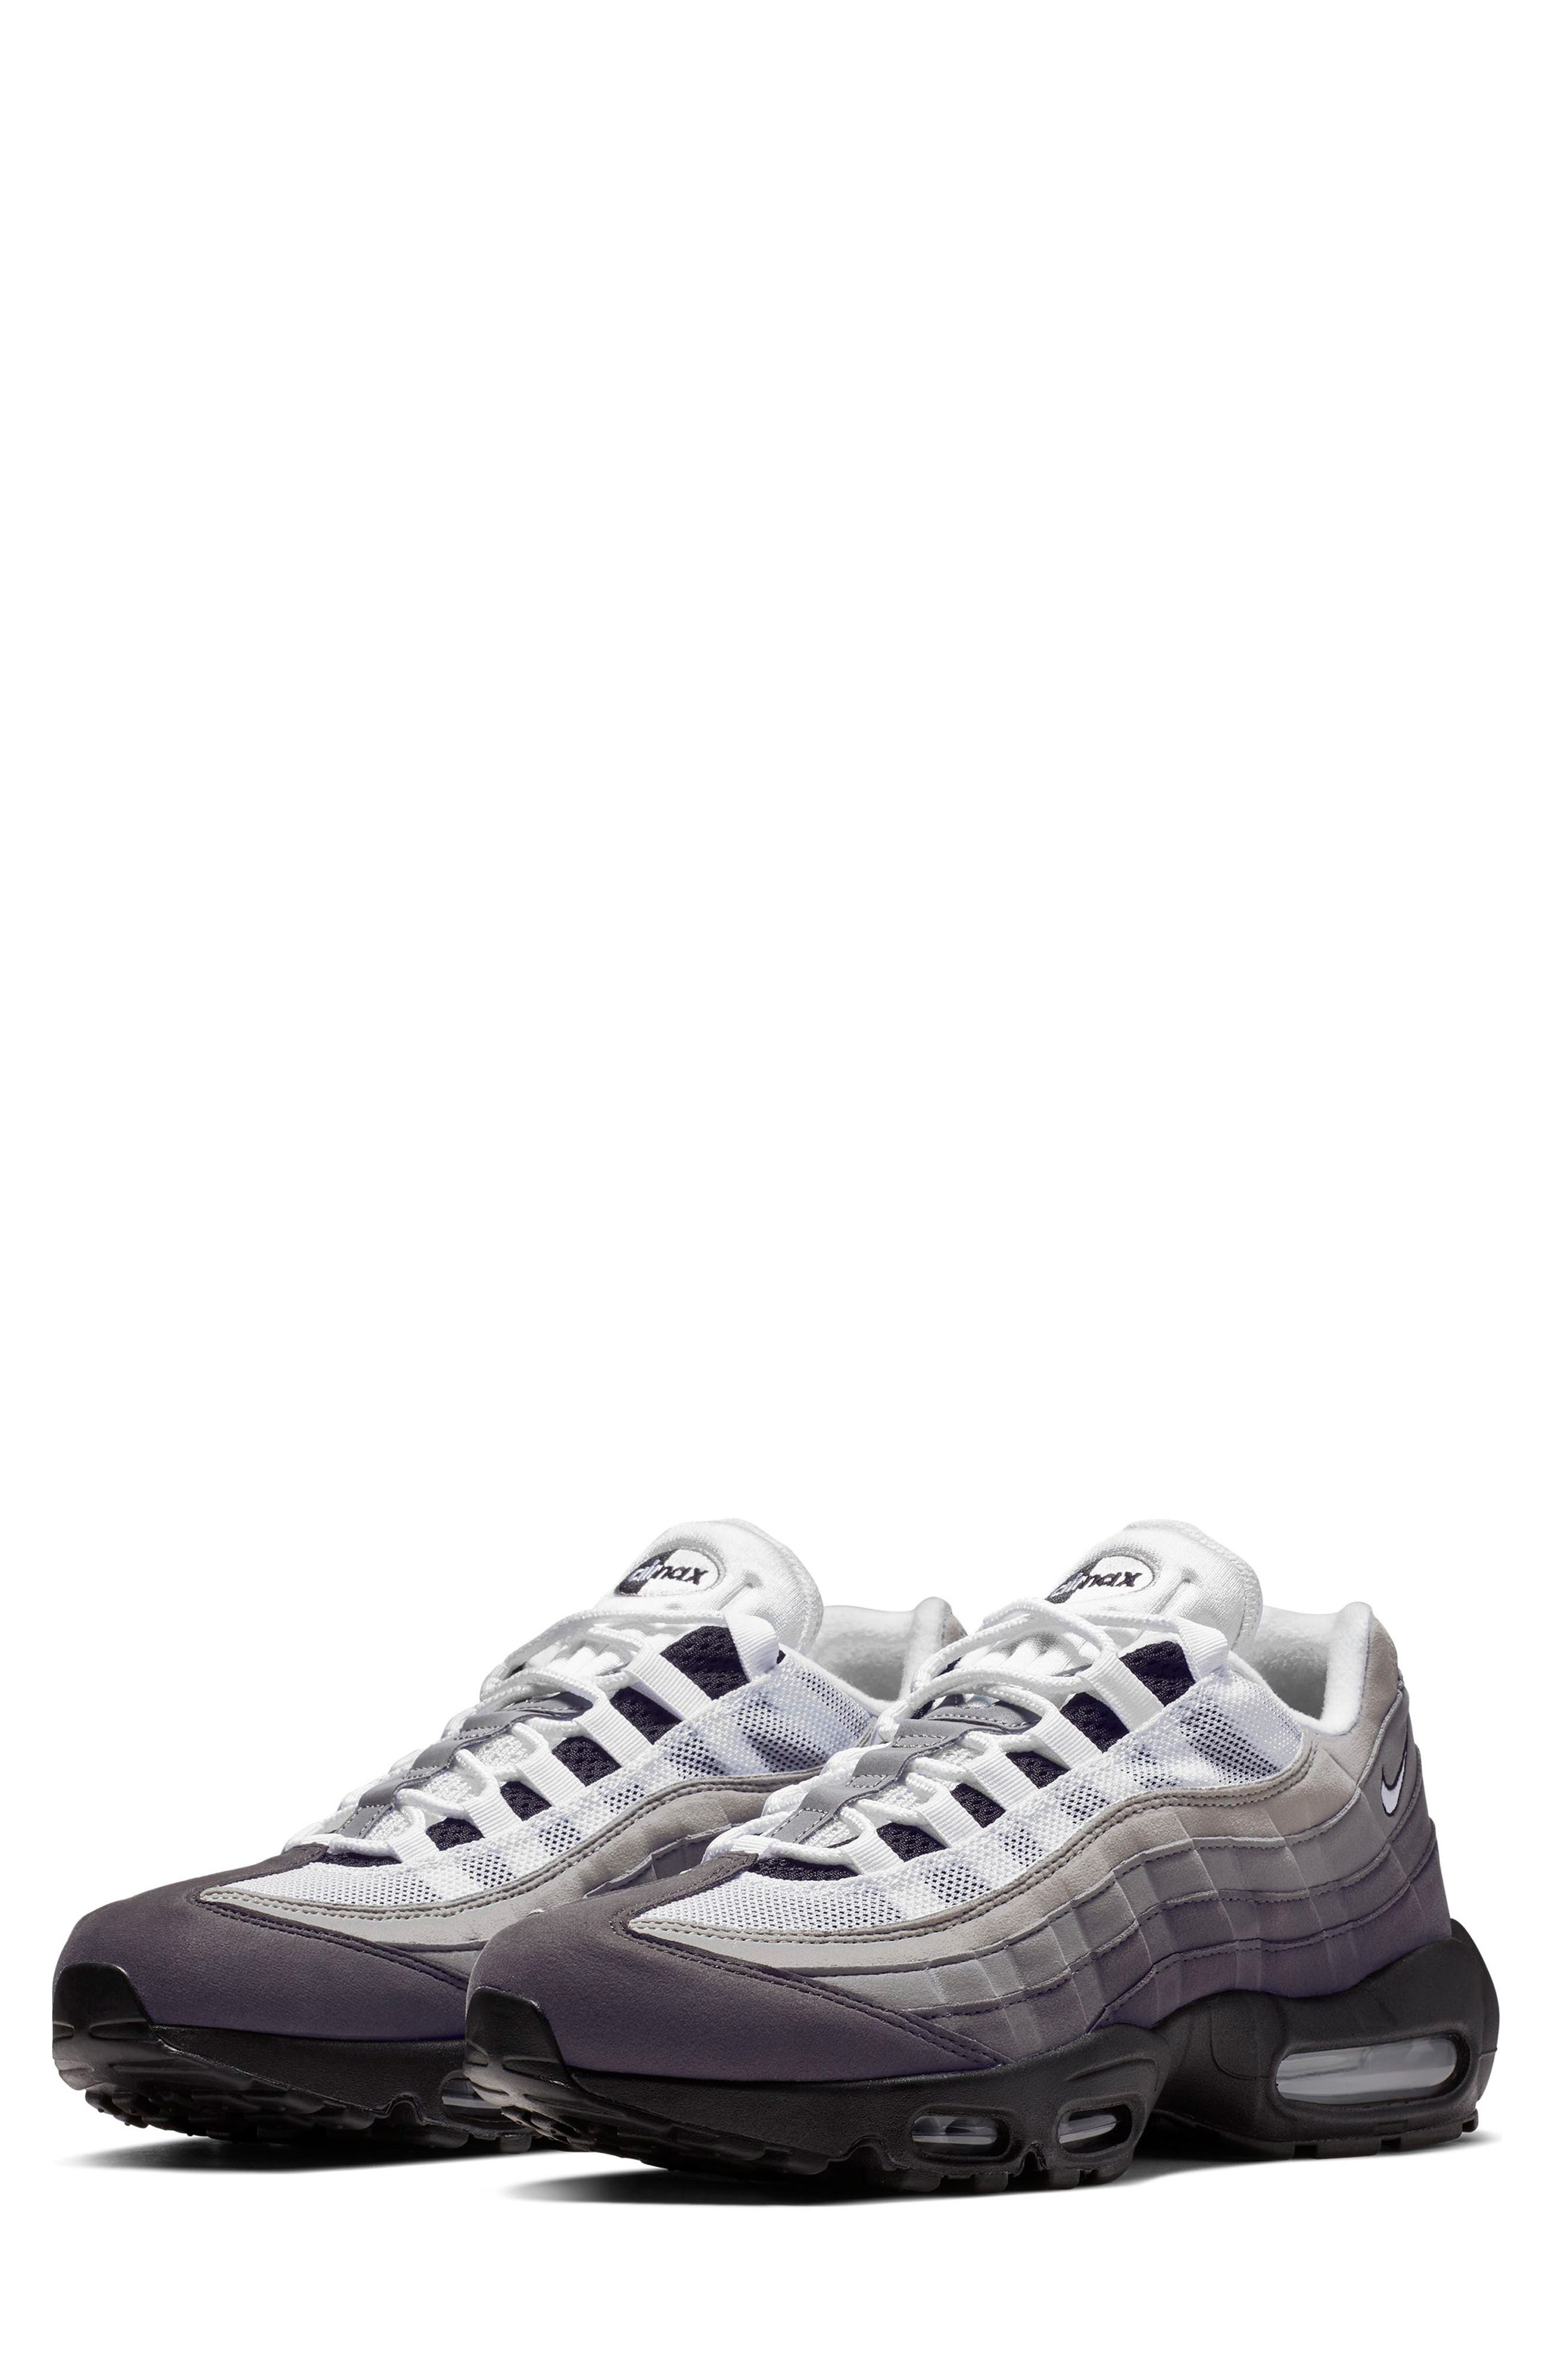 NIKE Air Max 95 OG Sneaker, Main, color, BLACK/ WHITE/ GRANITE/ DUST